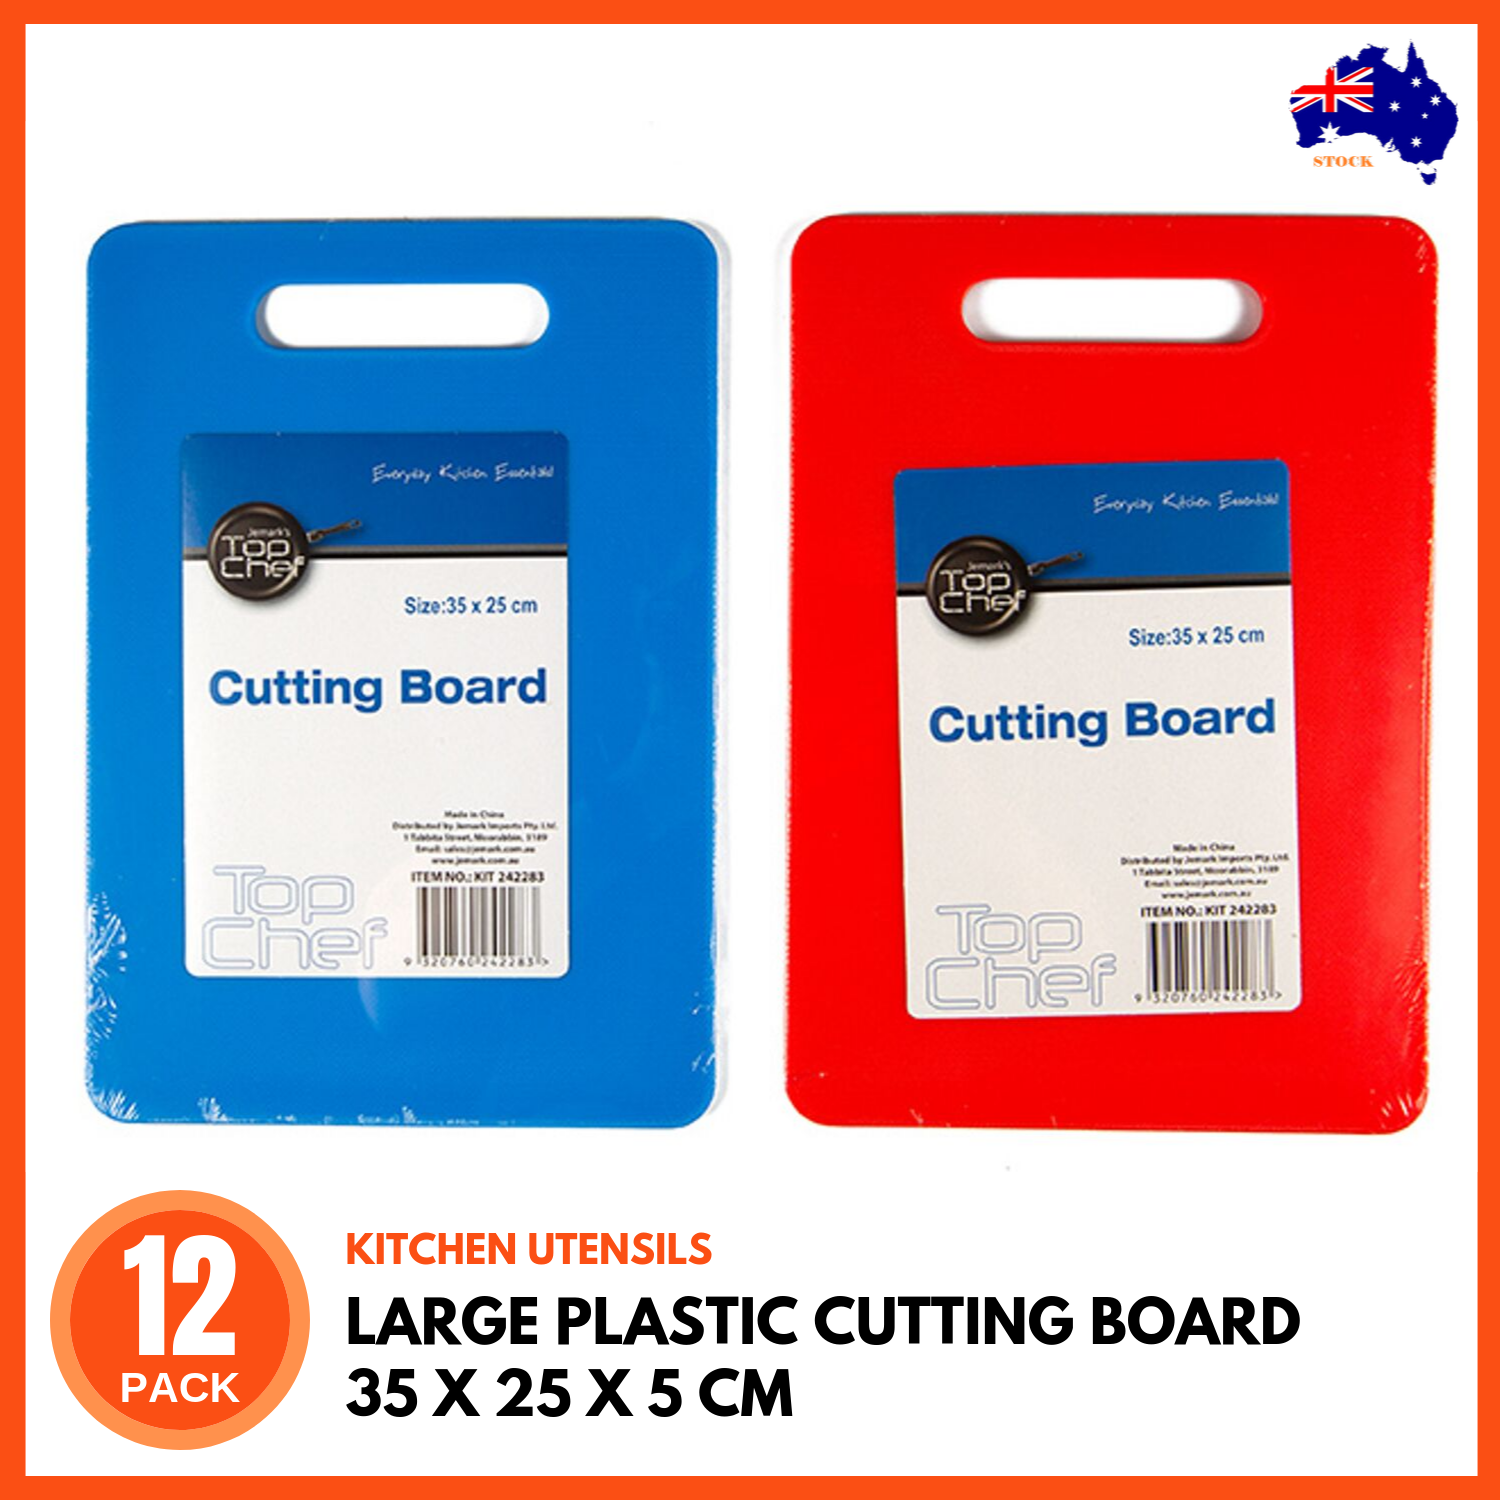 12 X Large Plastic Chopping Boards Cutting Board 35x25cm Kitchen Cutting Block Ebay